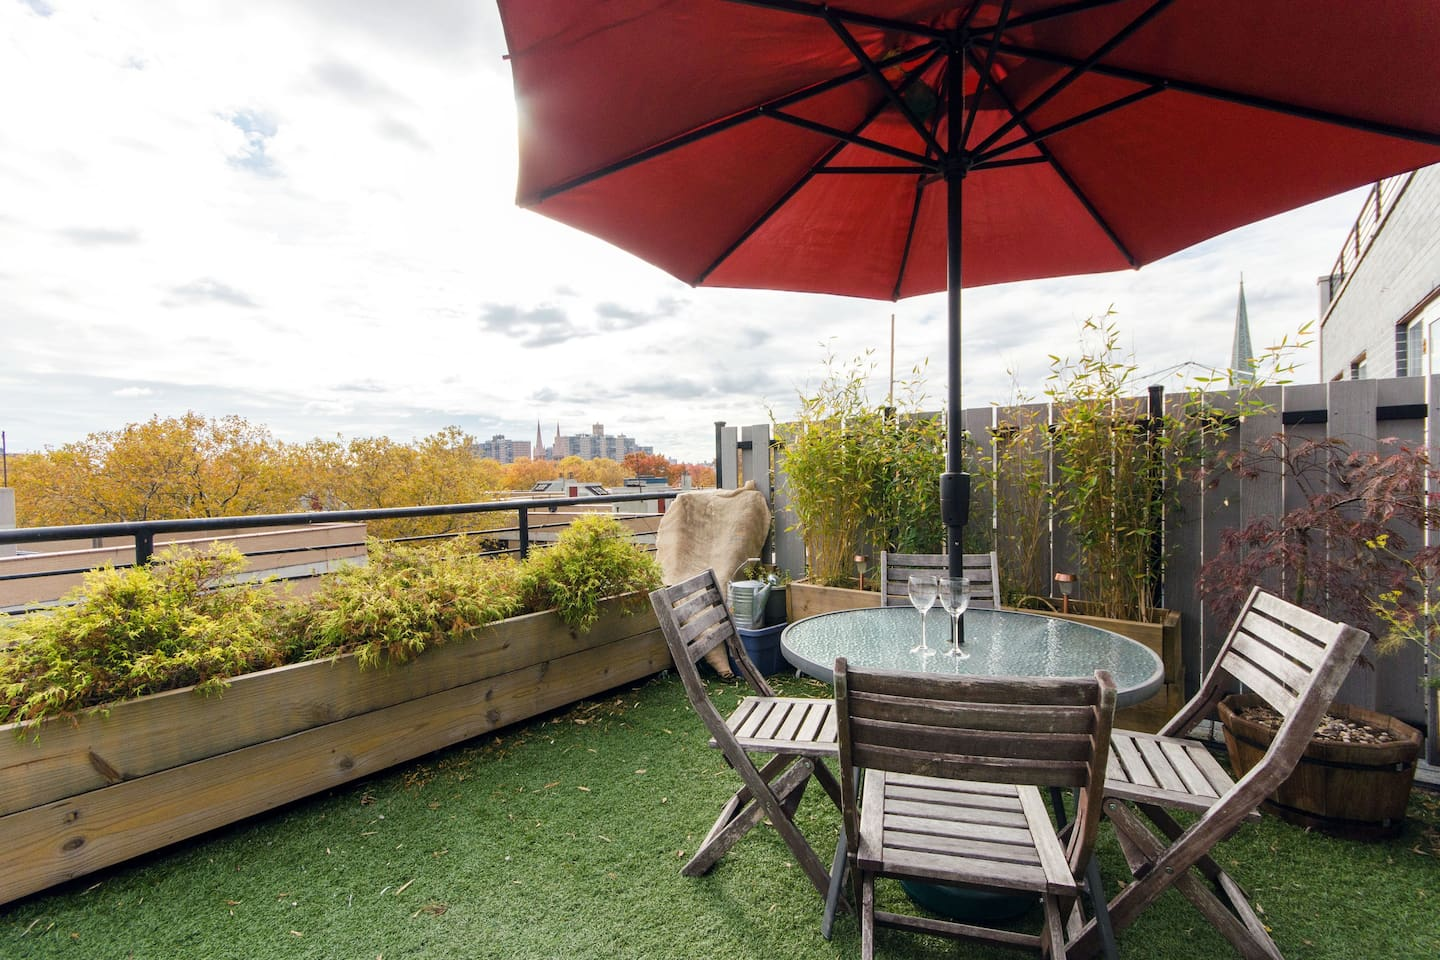 Our private deck is available during the daytime. Its a great place to relax and enjoy a drink or read a book.